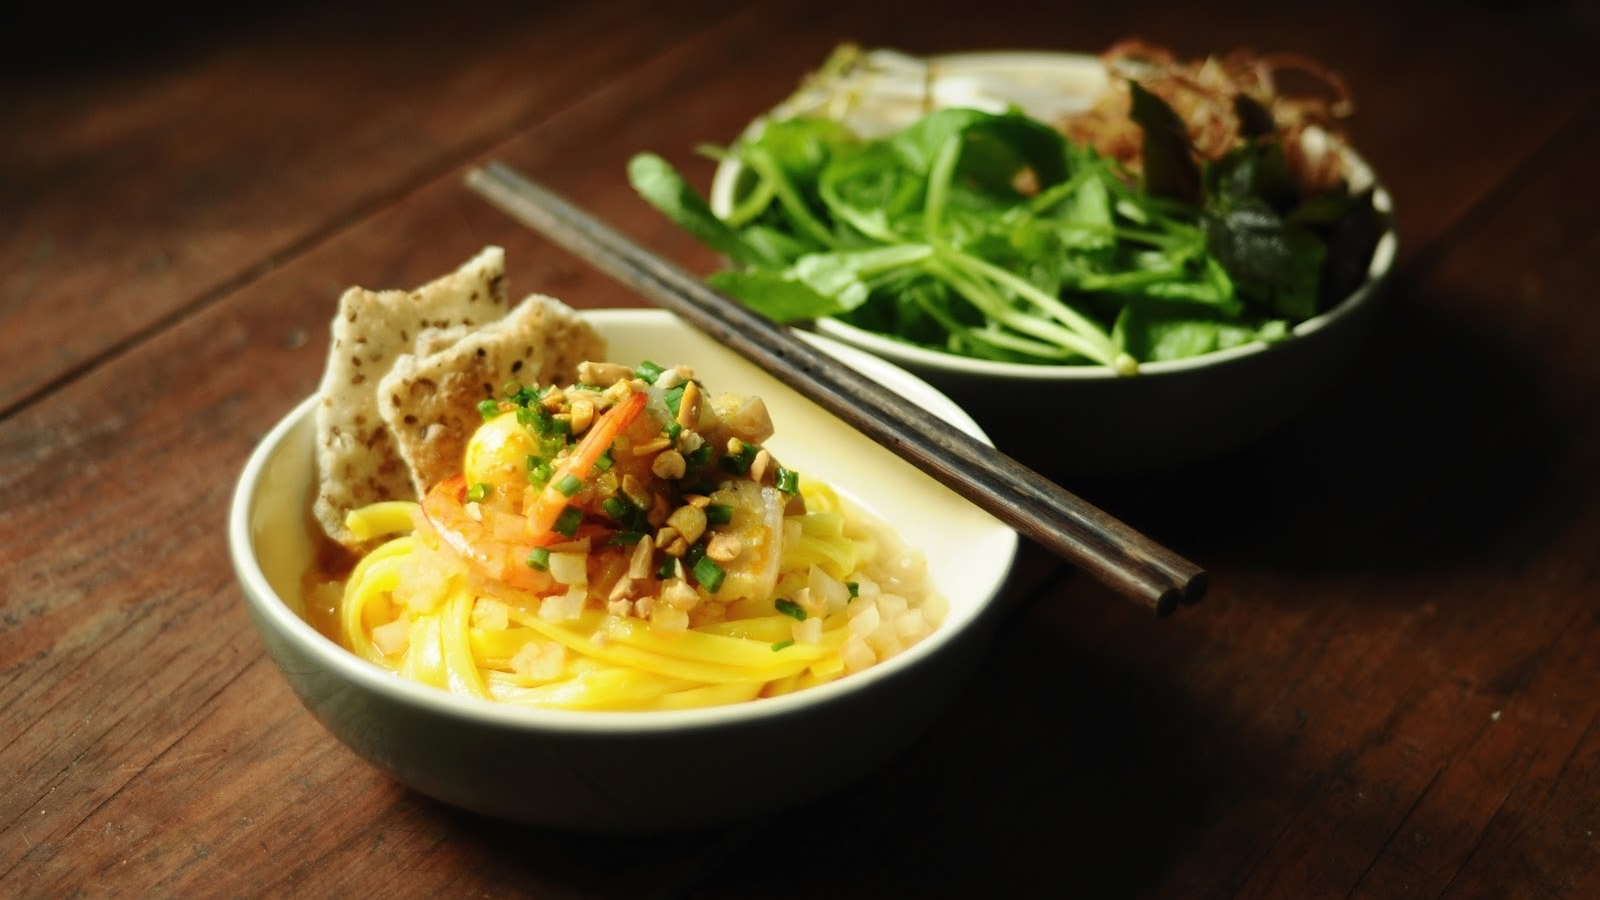 The Traditional Quang Noodles of Da Nang